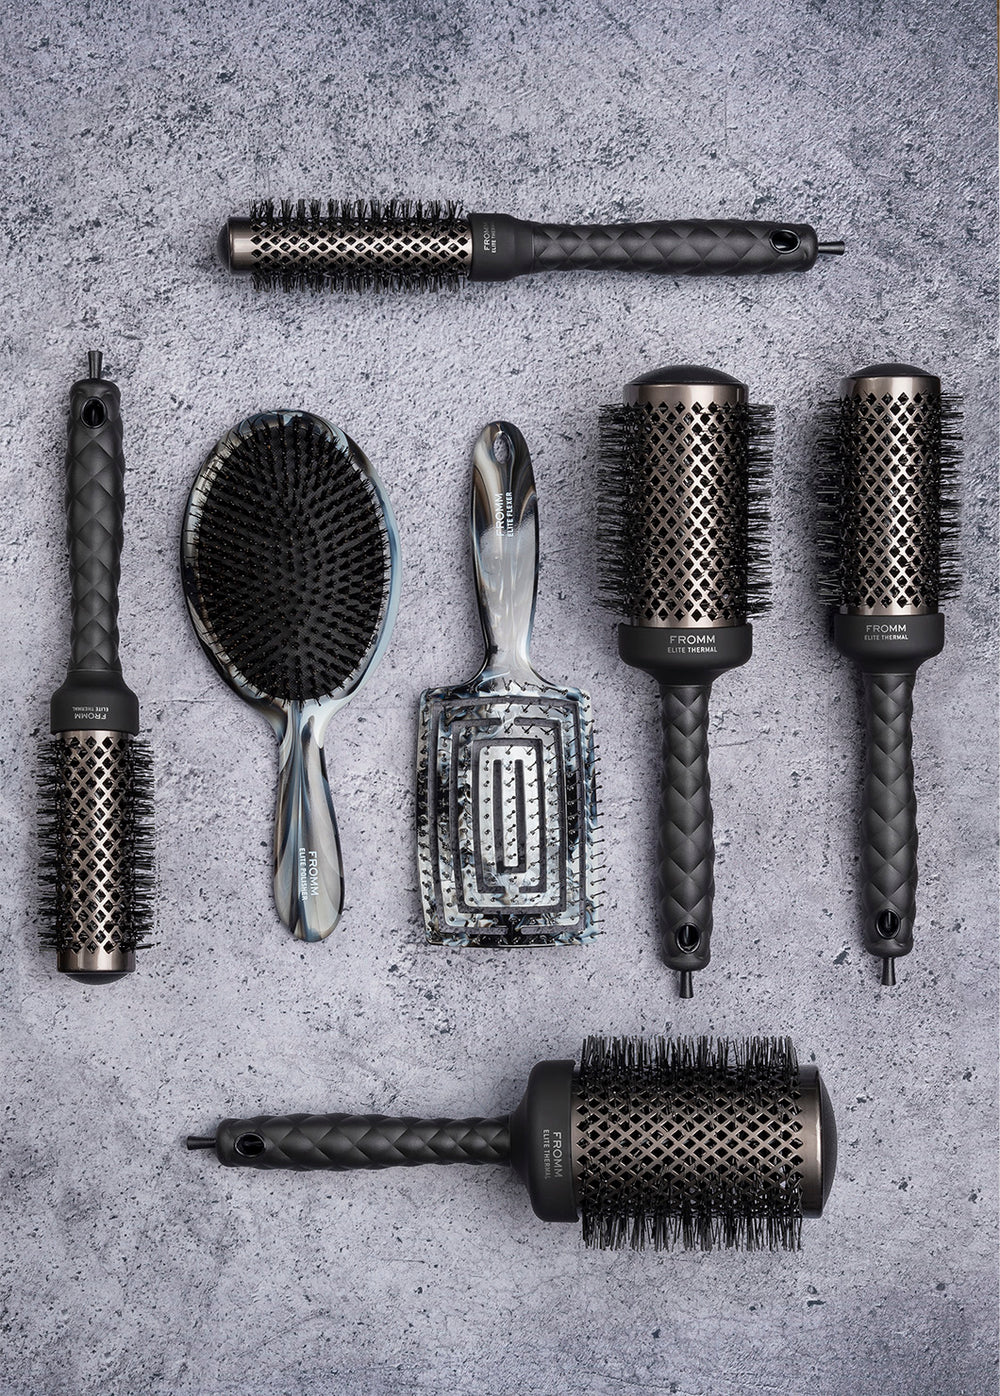 Fromm Pro Professional Salon Hairbrushes